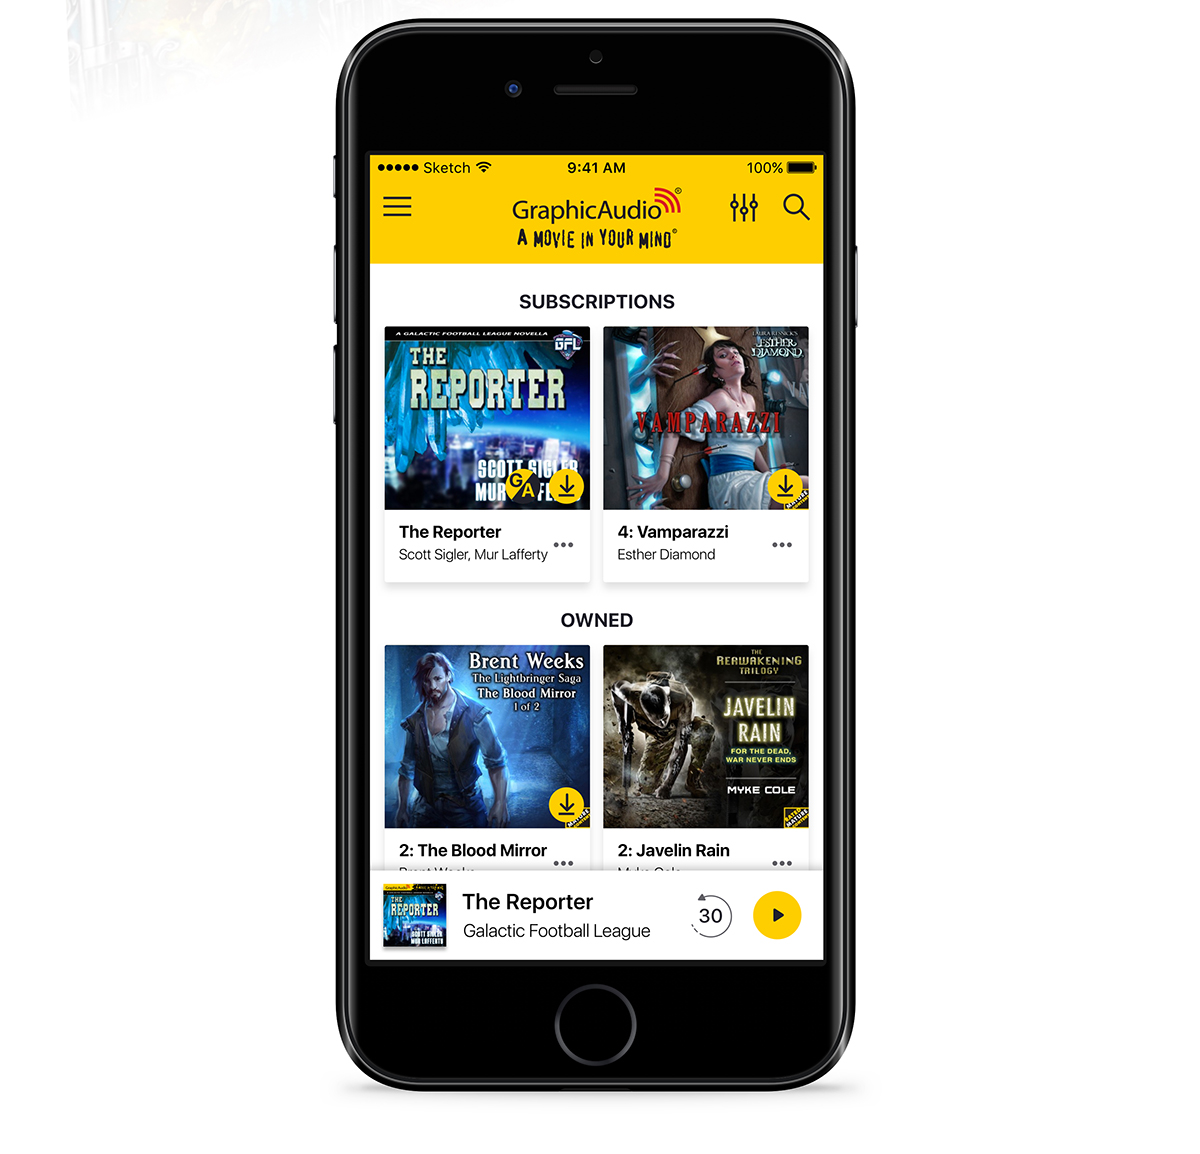 A smartphone displaying GraphicAudio's mobile app.